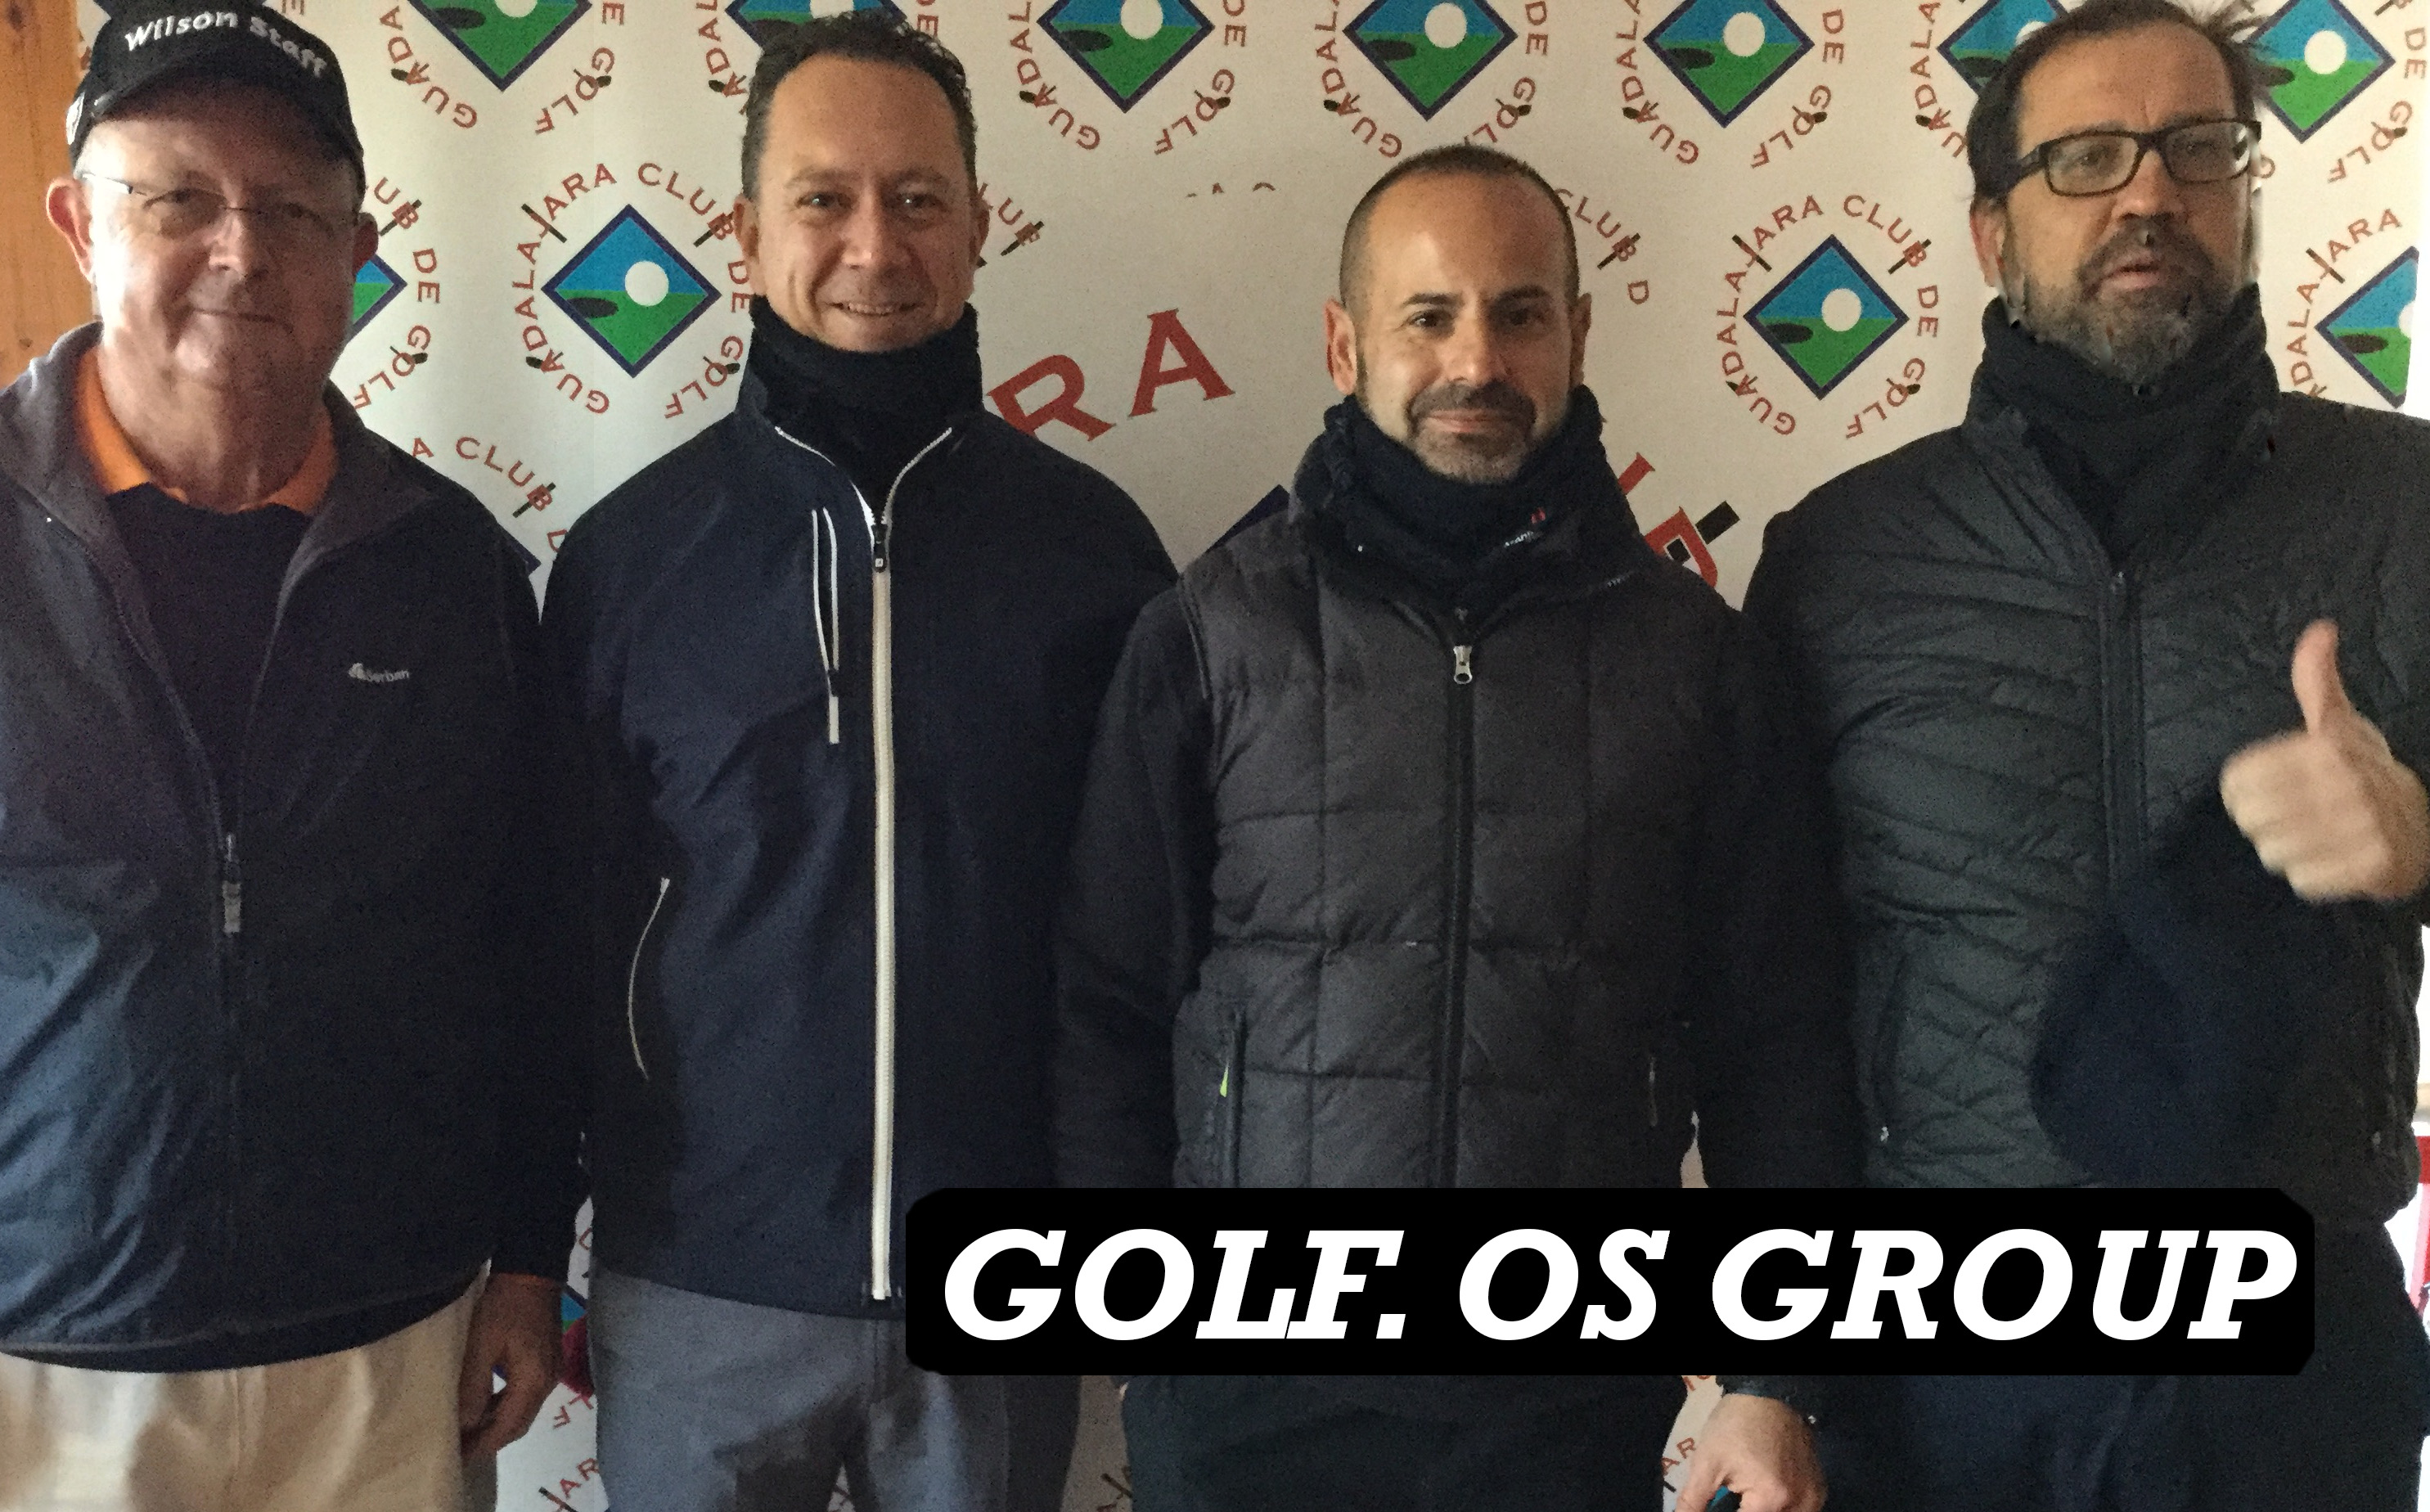 Golf.os Group